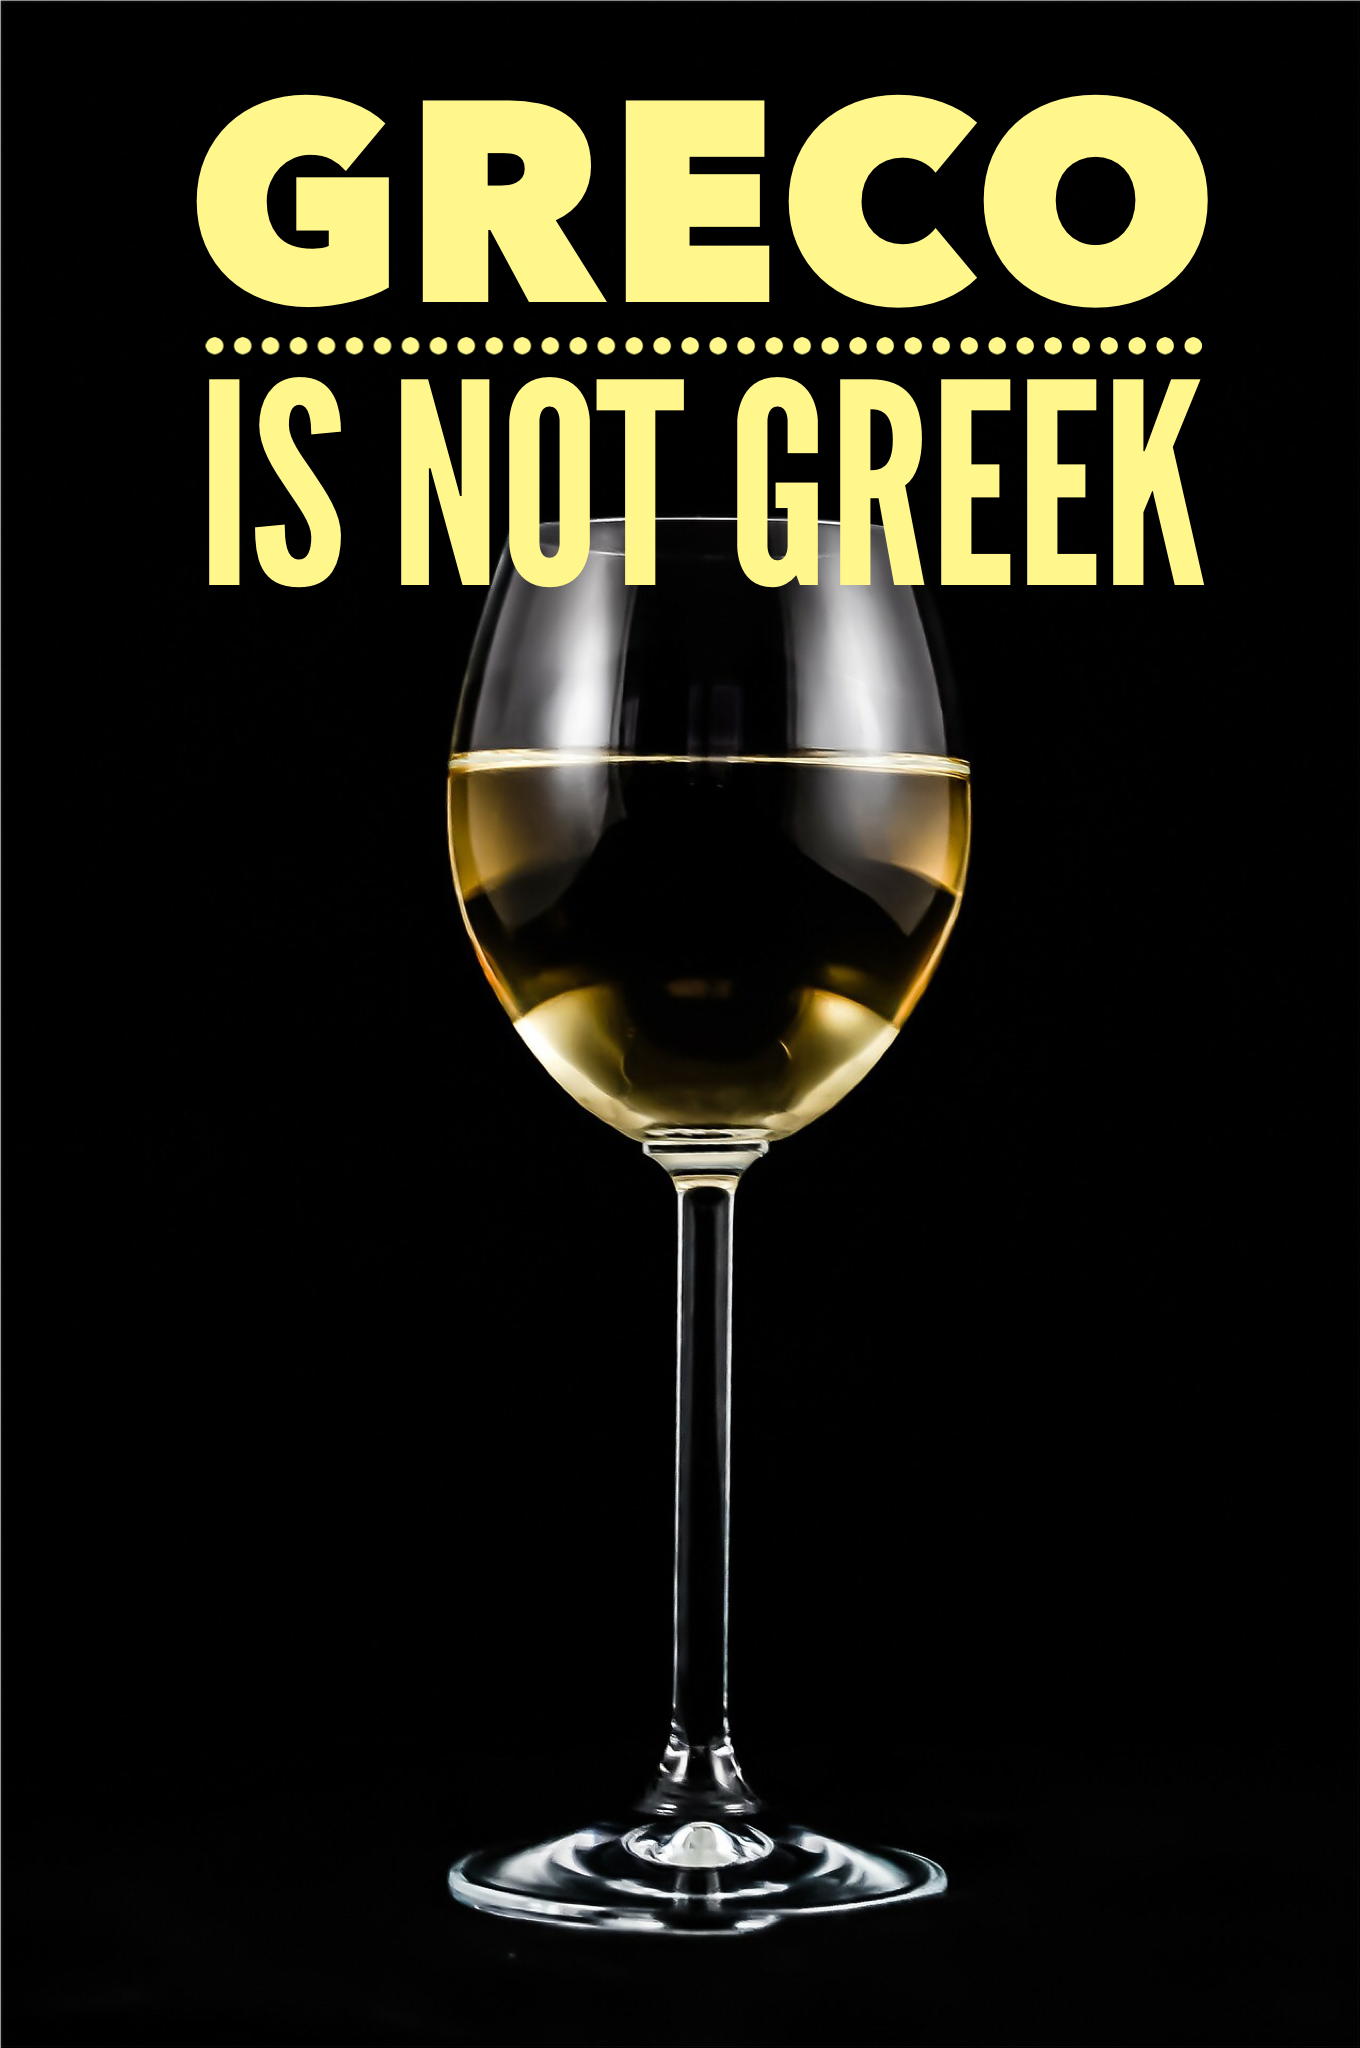 The Greco white wine variety is not of Greek origin